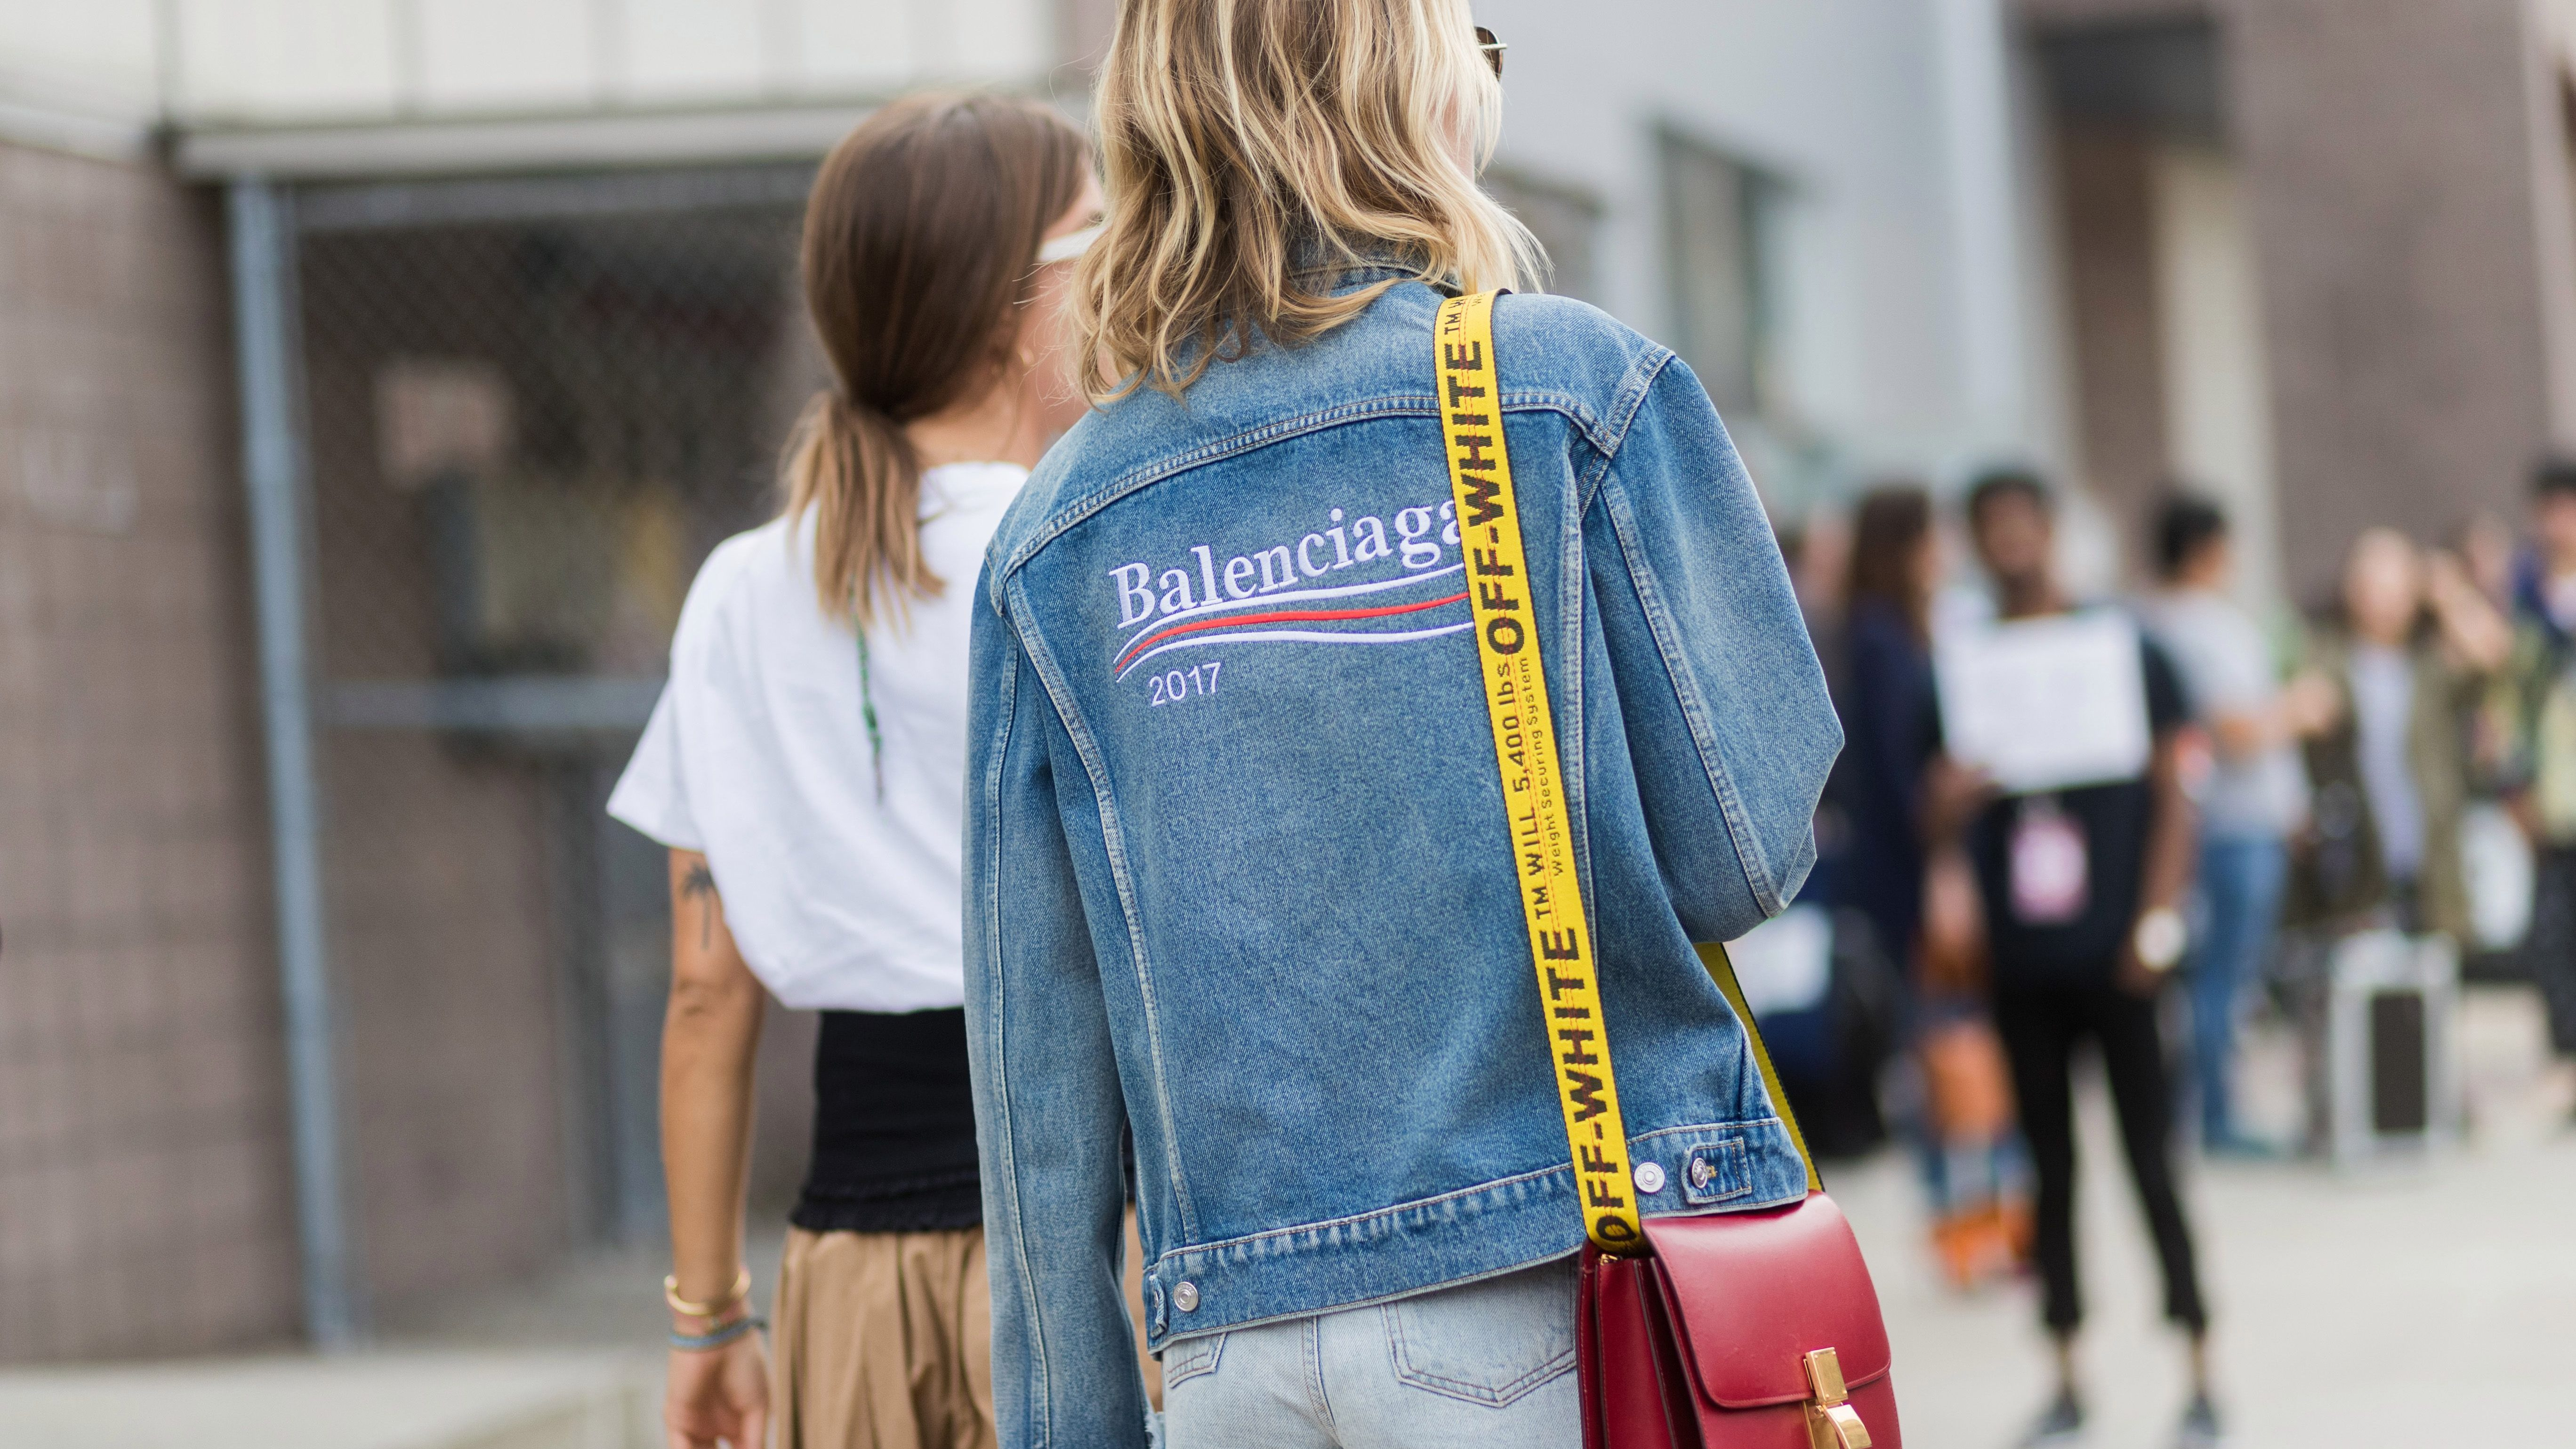 NEW YORK, NY - SEPTEMBER 12: A guest wearing Off White bag, Balenciaga denim jacket seen in the streets of Manhattan outside Coach during New York Fashion Week on September 12, 2017 in New York City. (Photo by Christian Vierig/Getty Images)